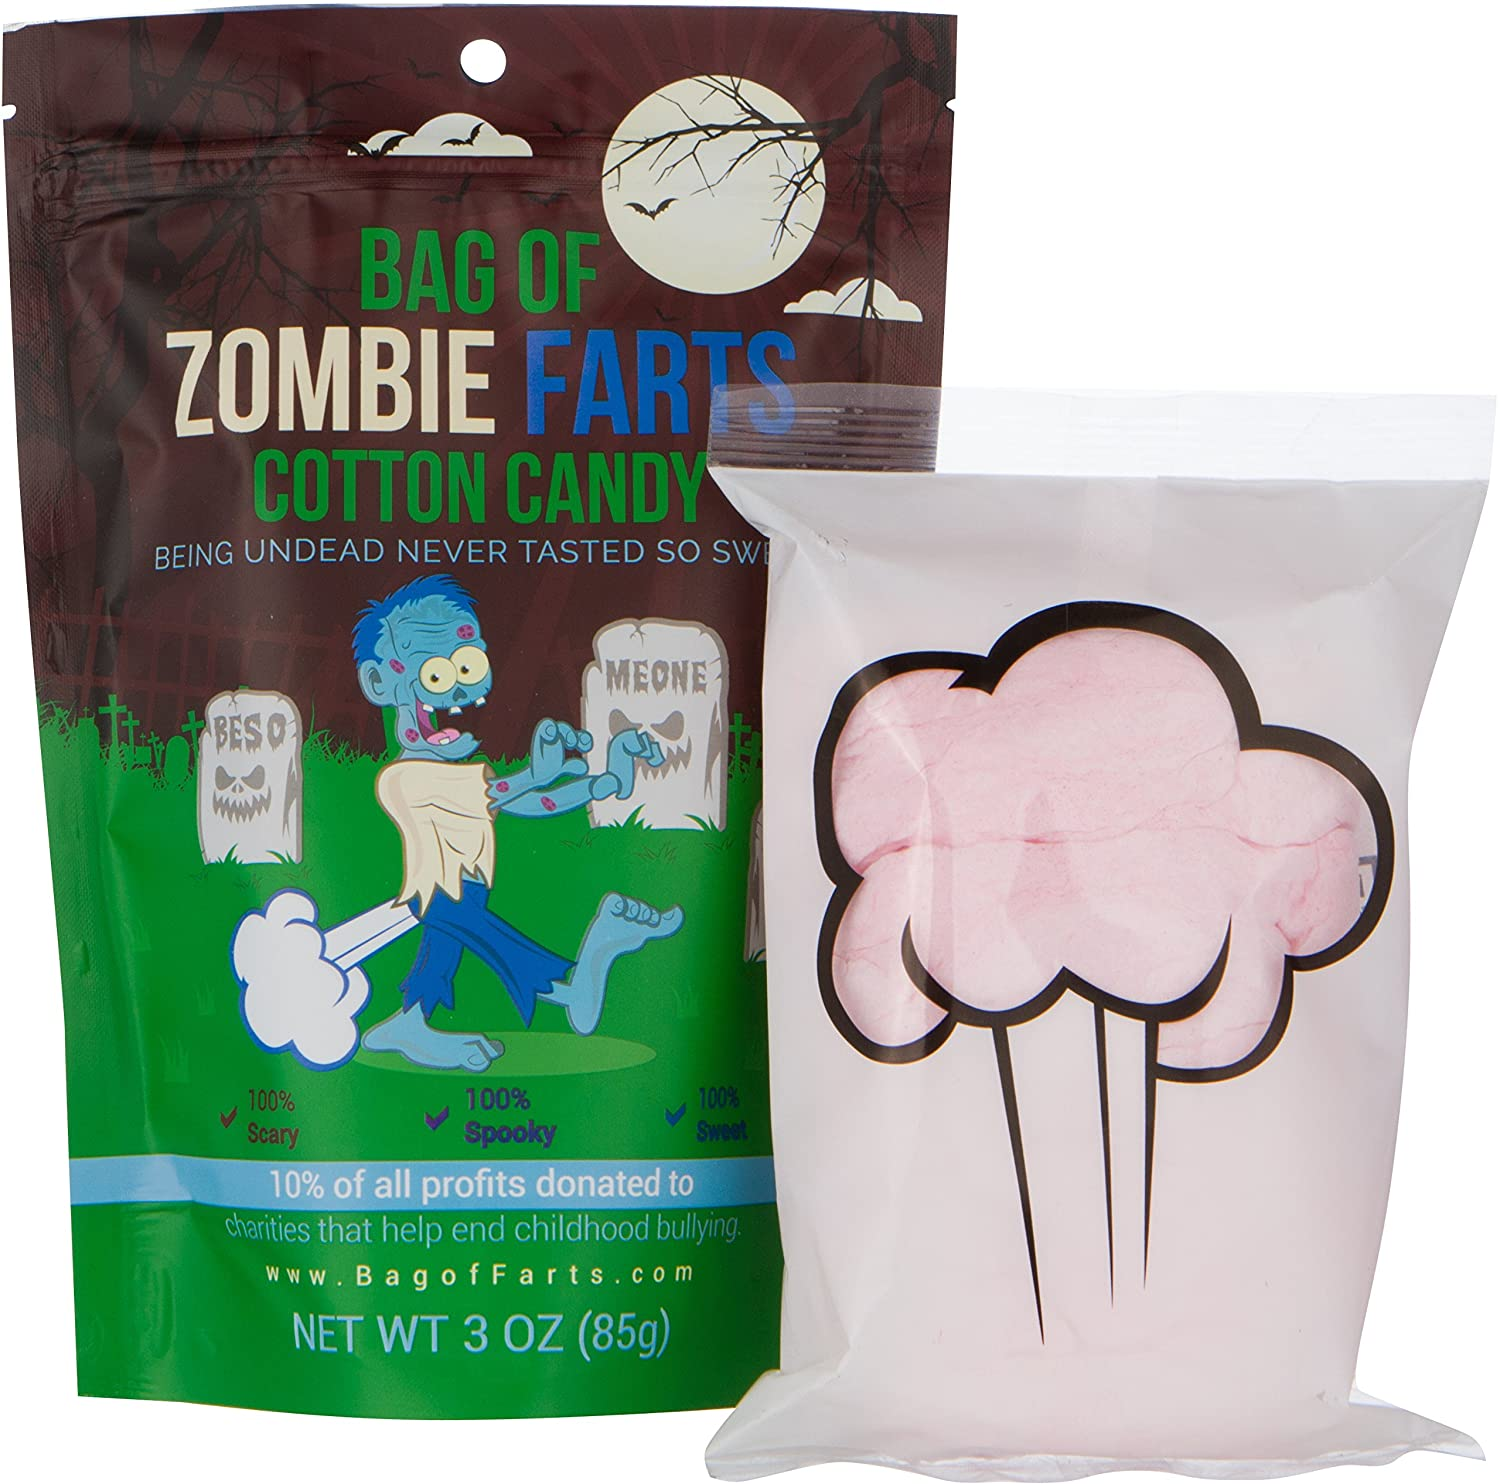 Cotton candy - fun or profitable business 57